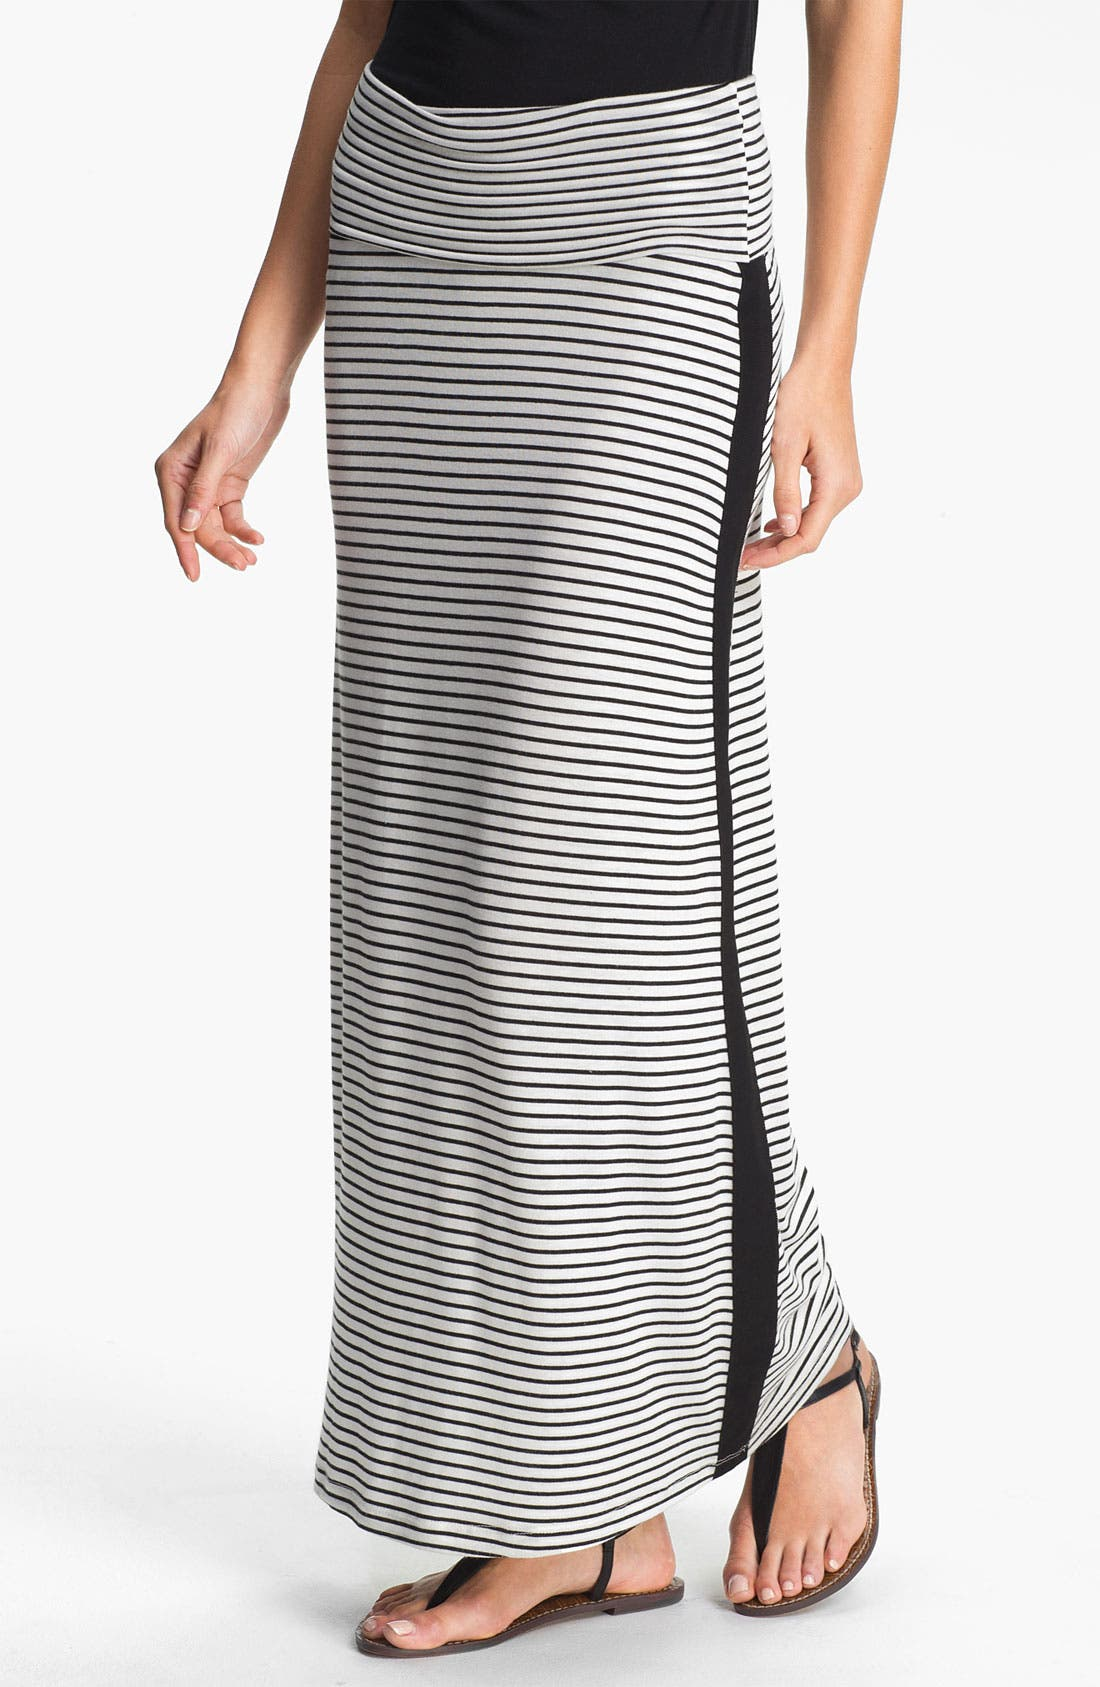 Main Image - Everleigh Tuxedo Stripe Maxi Skirt